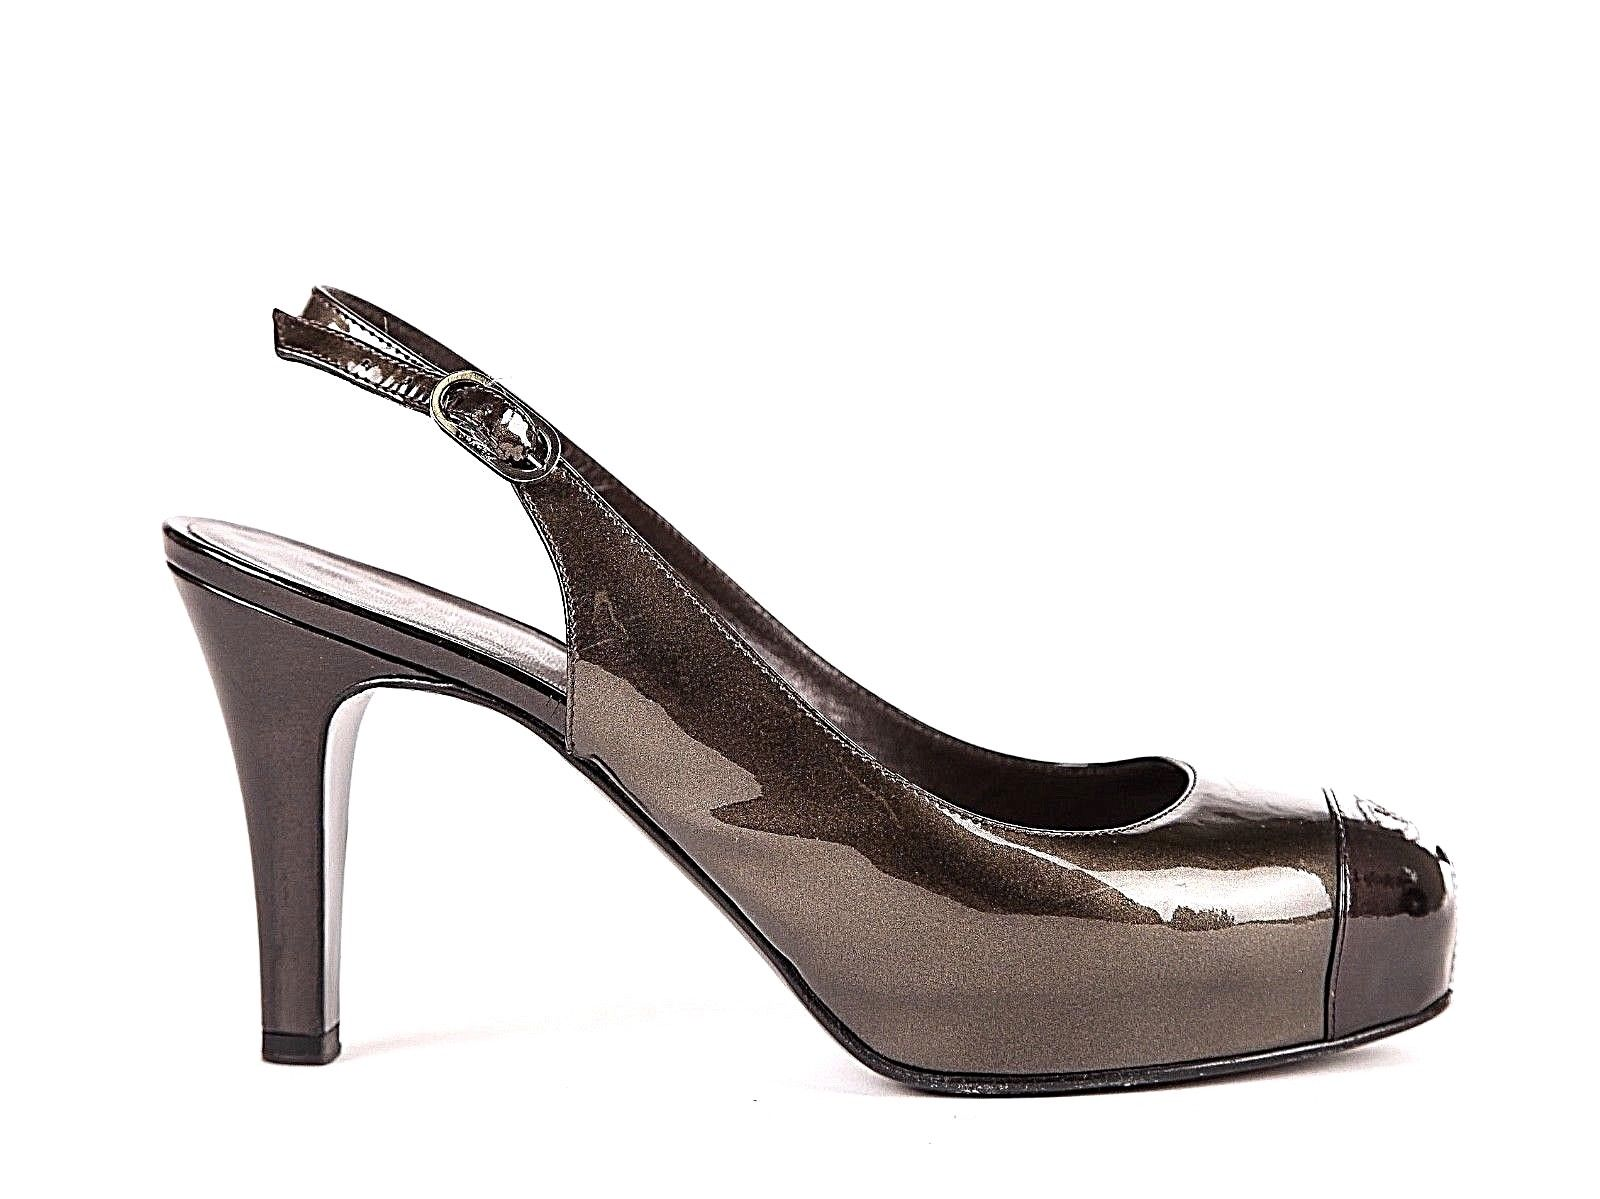 CHANEL Patent Leather Slingback Heels Size 37.5